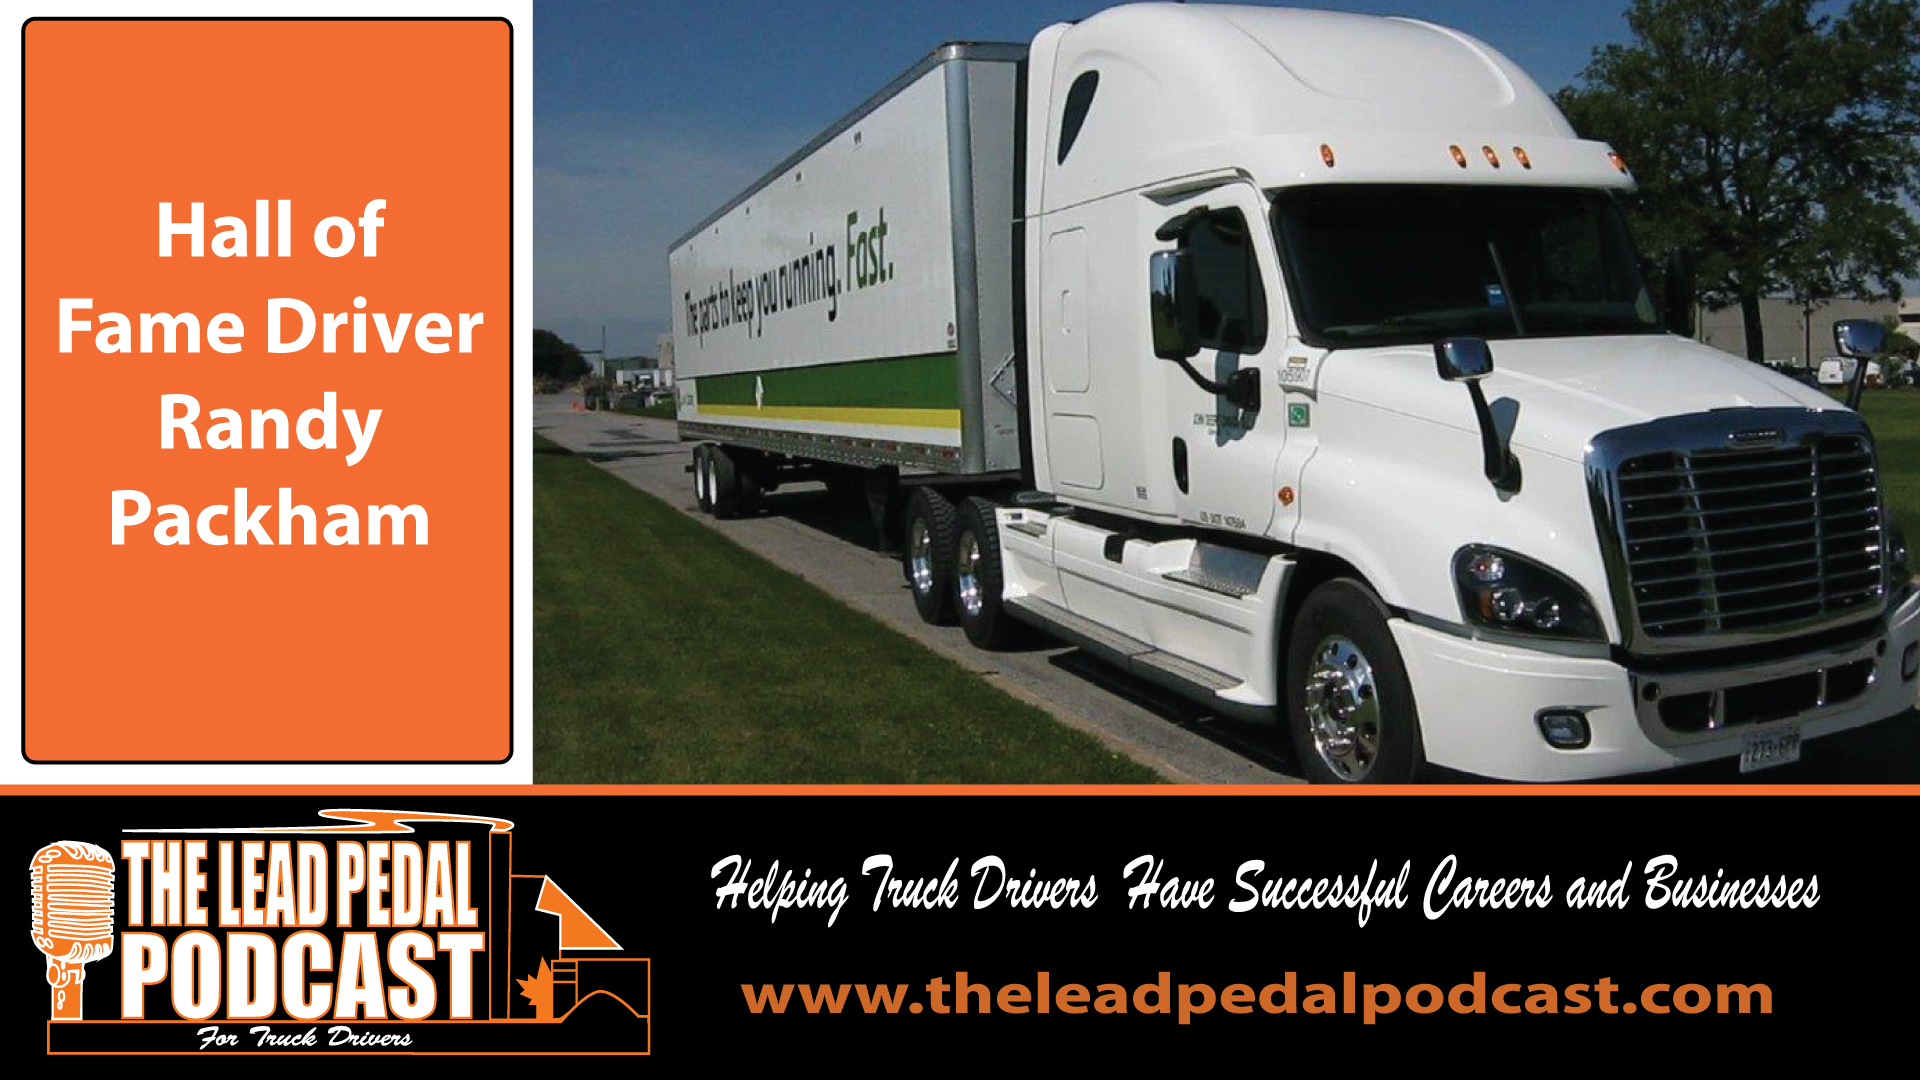 LP650 Becoming a Hall of Fame Driver with Randy Packham